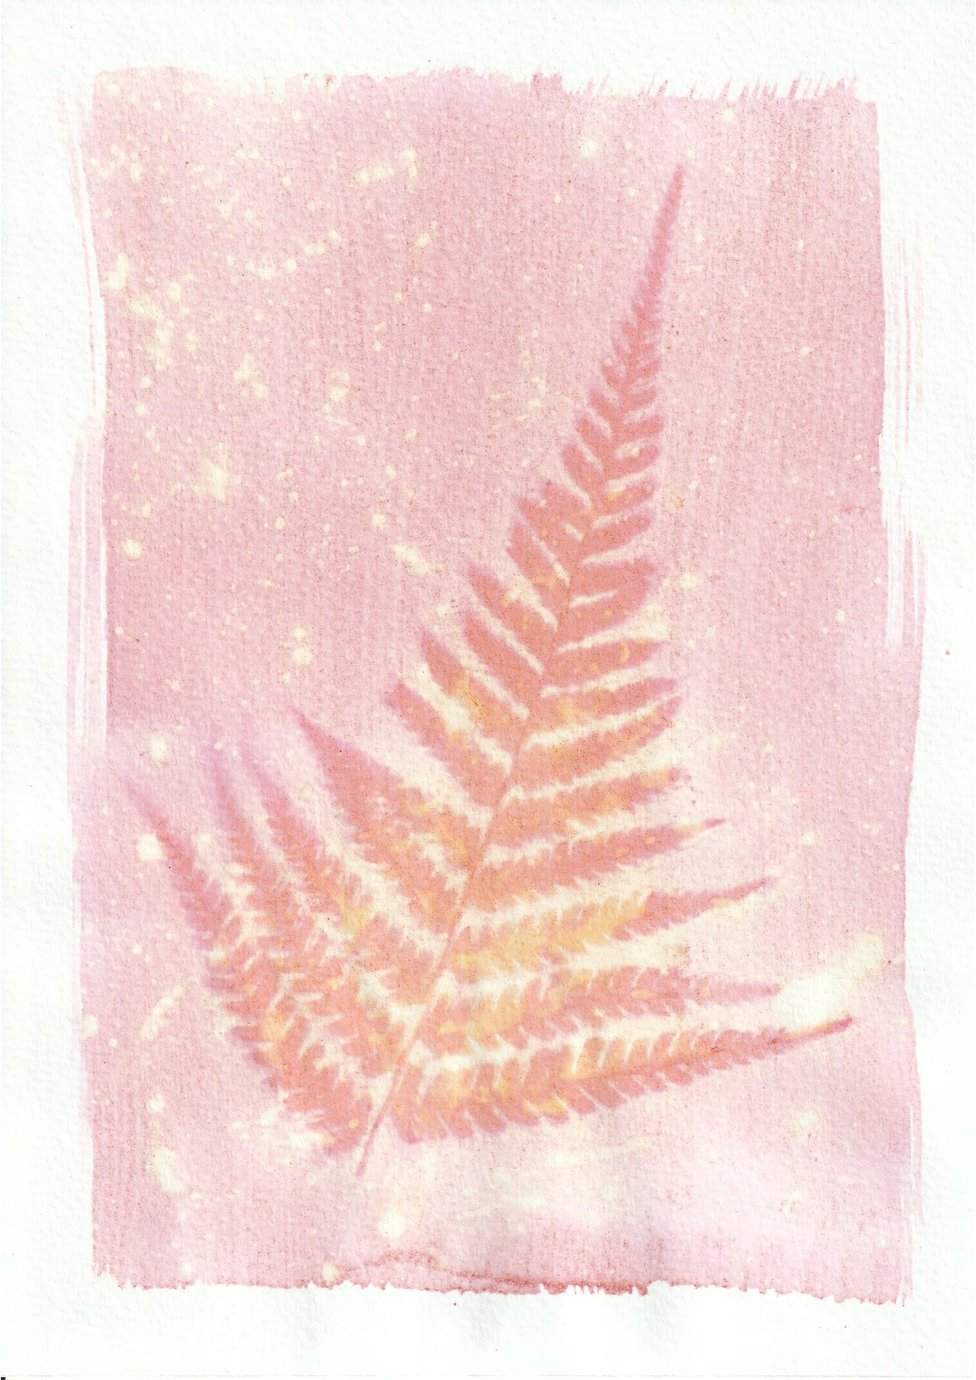 An anthotype print of a pink and orange leaf